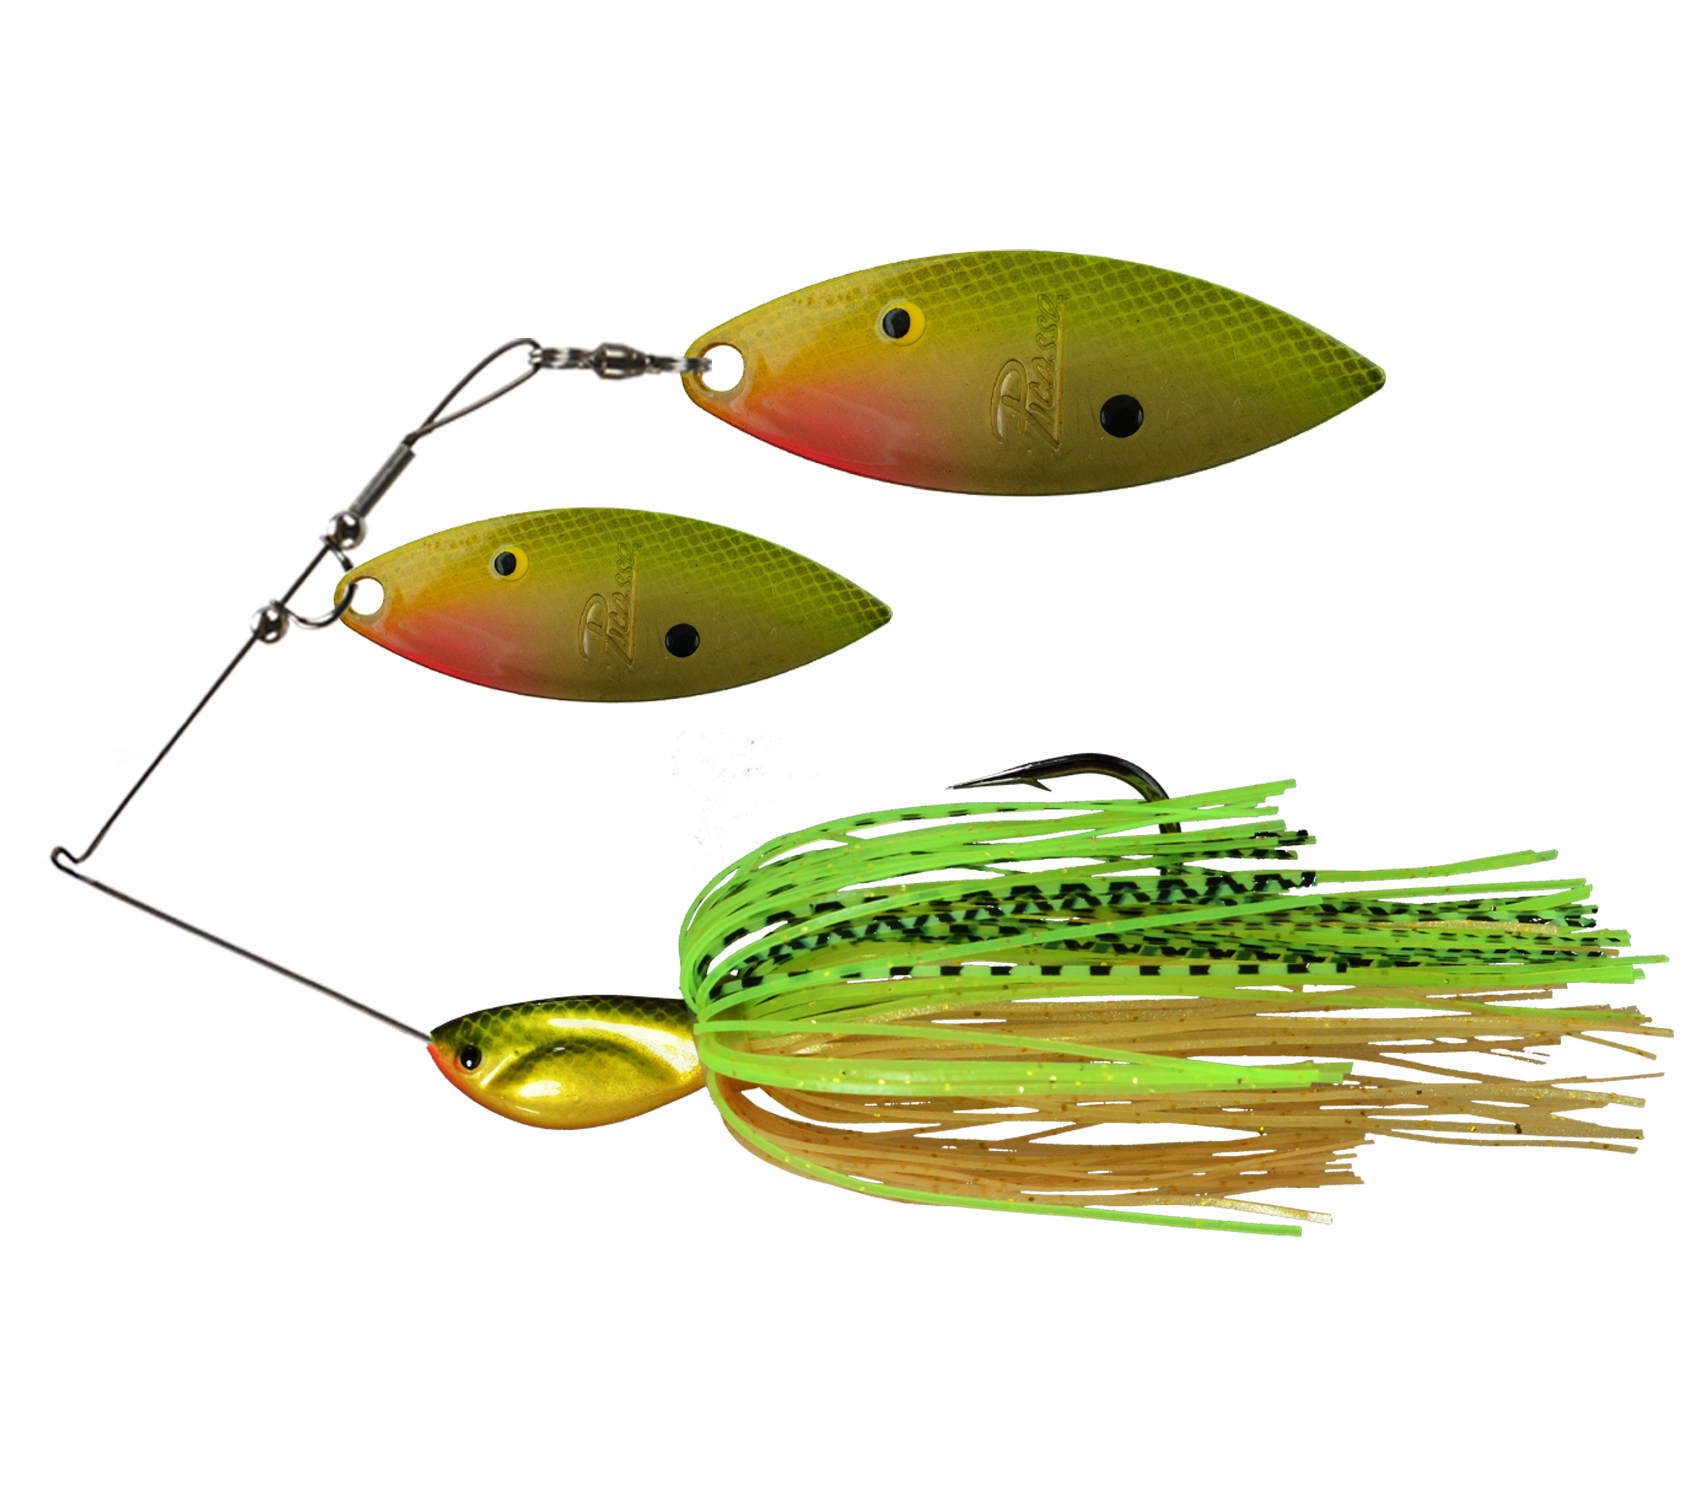 Picasso Lures Double Willow Painted Blade Spinner Bait